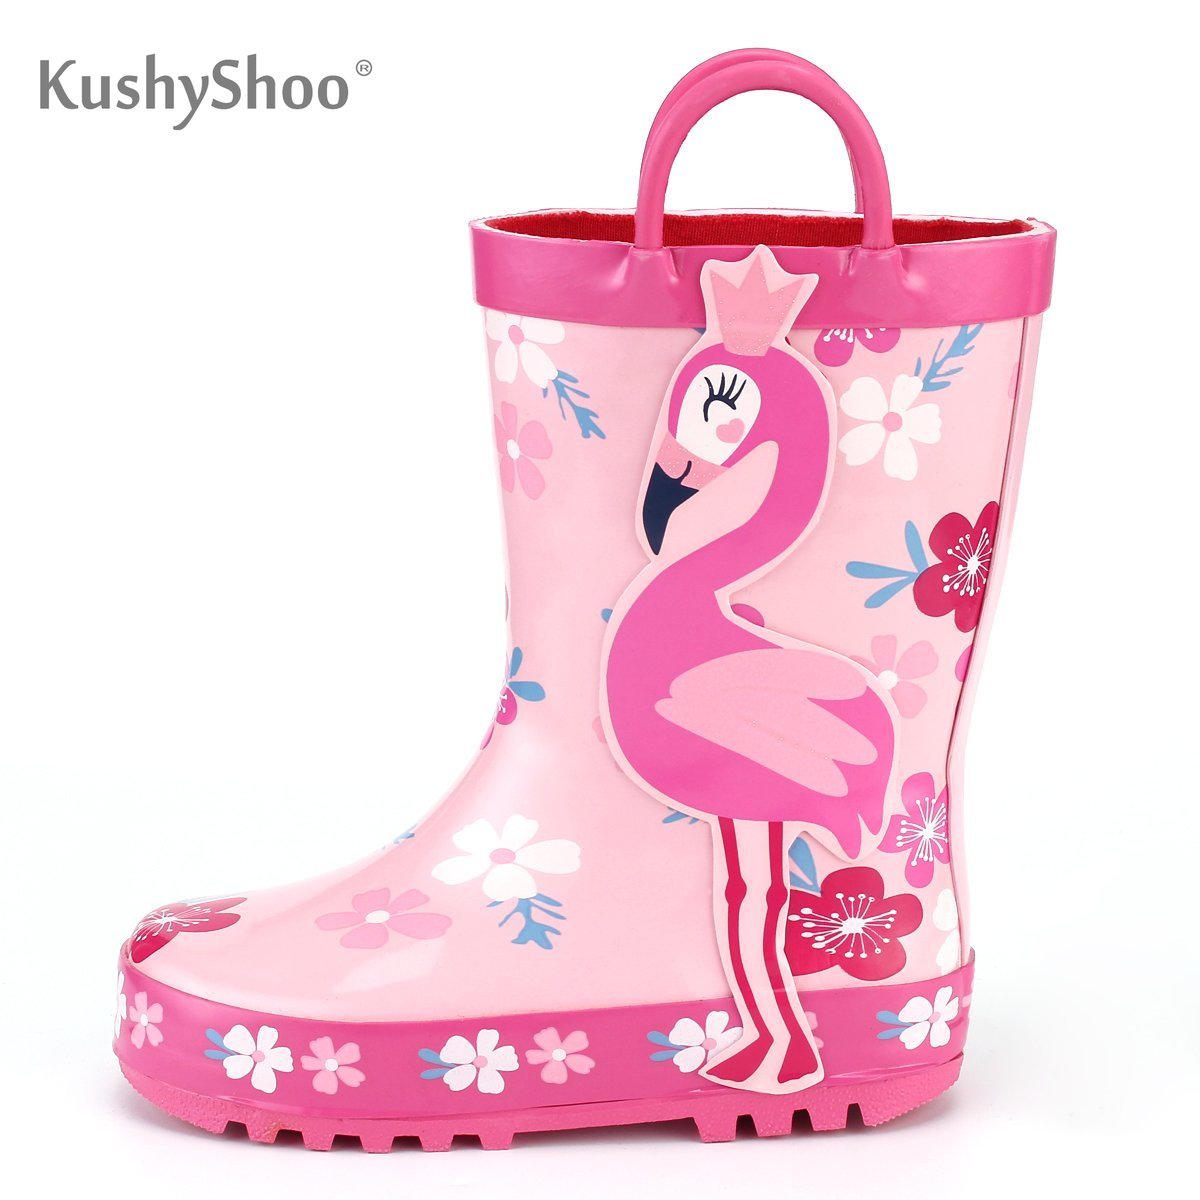 KushyShoo Children's Rubber Boots Outdoor Waterproof 3D Flamingo Printing Rain Boots Kids Toddler Water Boots Kalosze Dla Dzieci